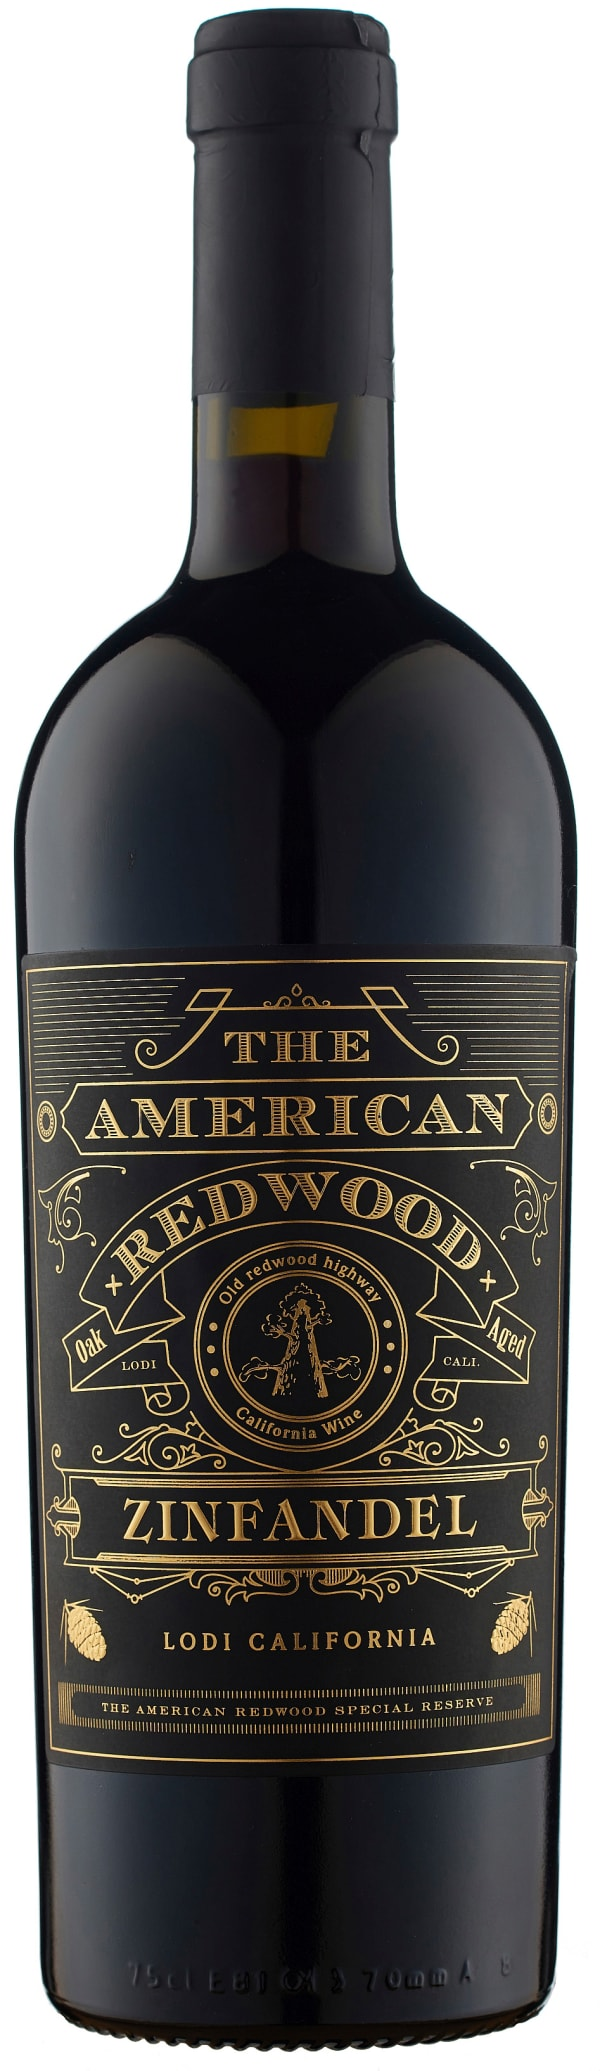 The American Redwood Zinfandel 2017